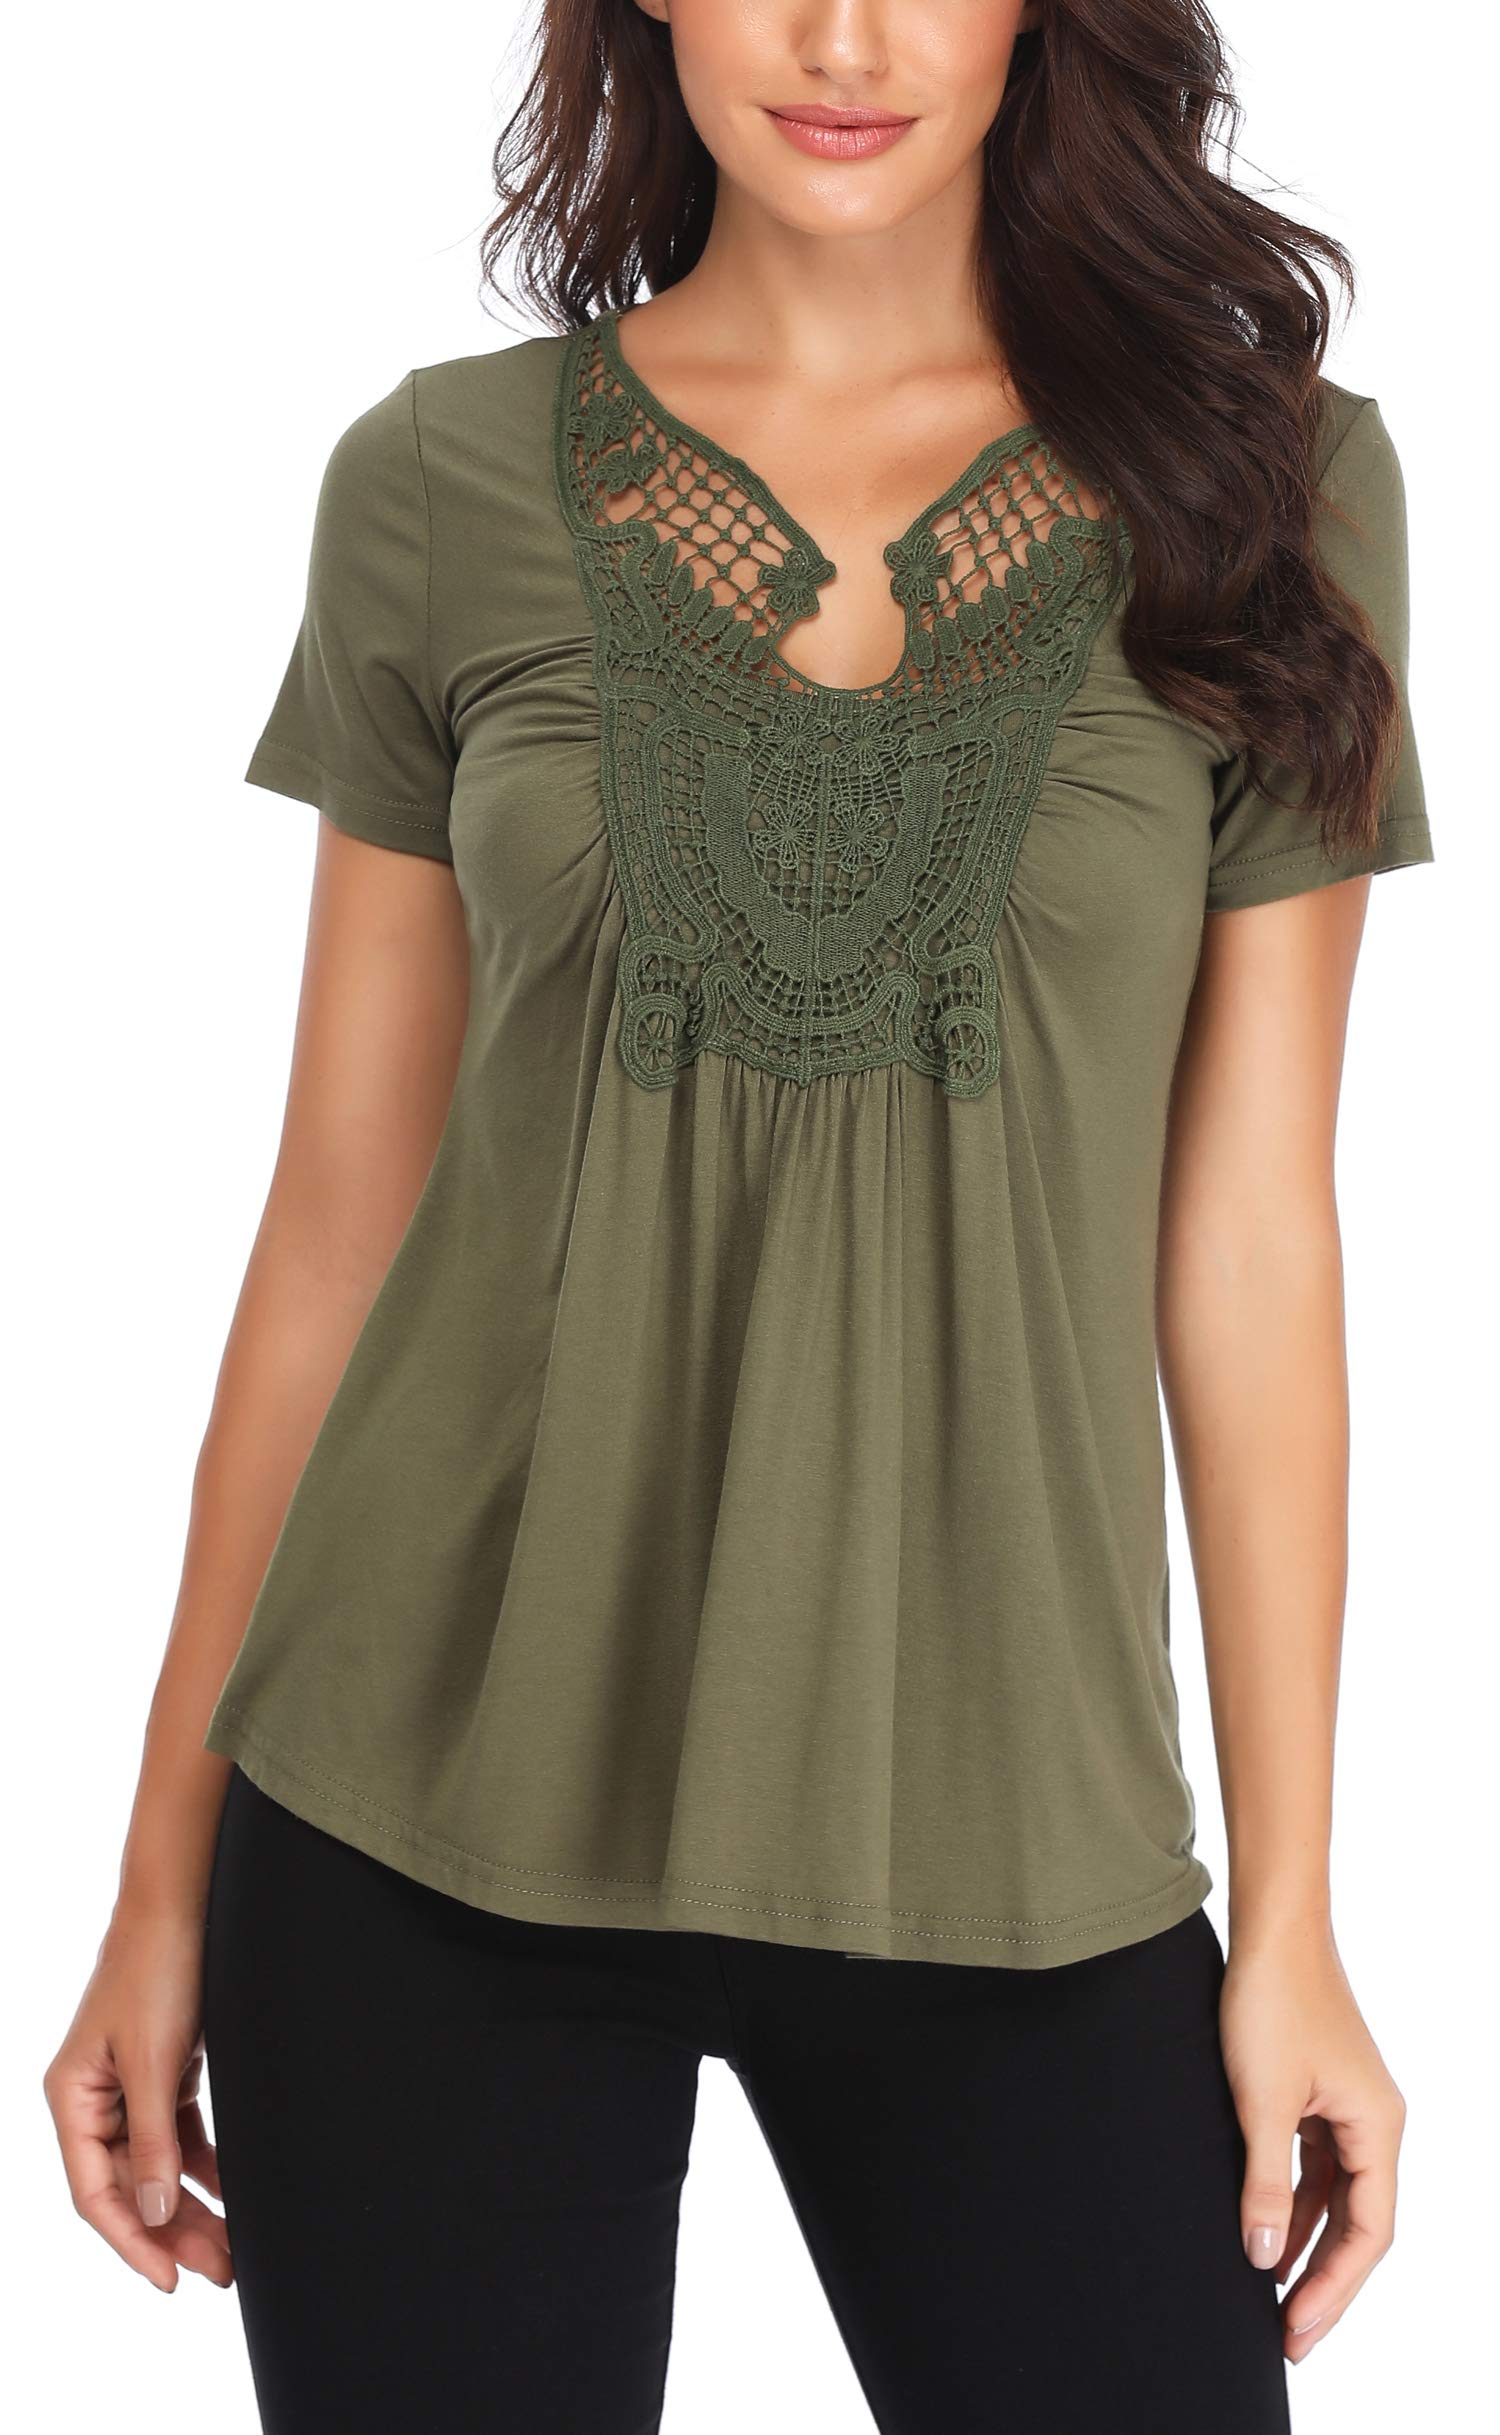 MISS MOLY Women's Short Sleeves Lace Front Ruffle Tops Sexy Peplum Blouse Tee Shirts Army Green L